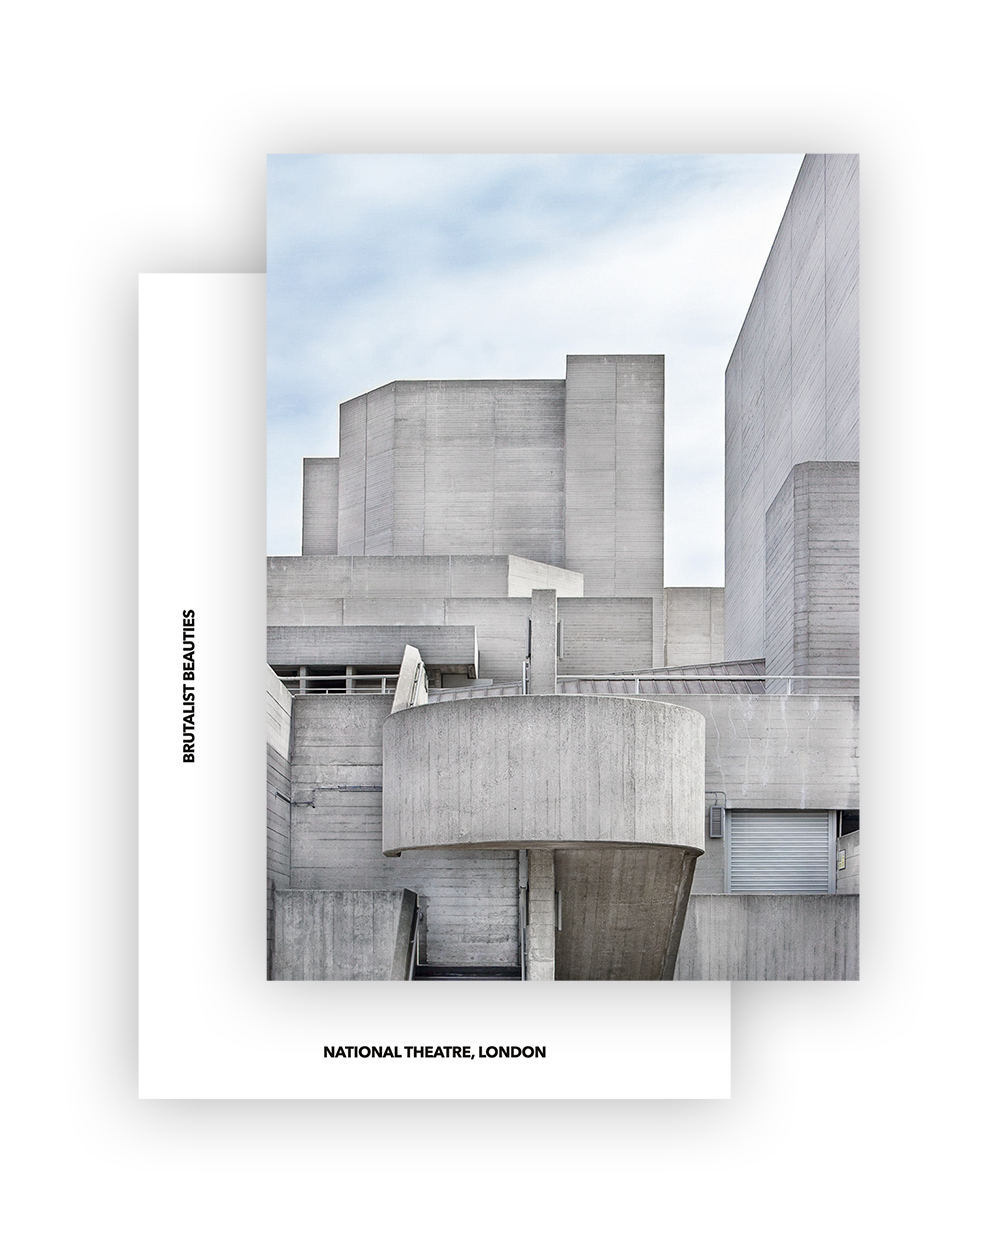 NATIONAL THEATRE I DENYS LASDUN I BRUTALIST BEAUTIES POSTCARD A6 I © HEARTBRUT/KARIN HUNTER BÜRKI